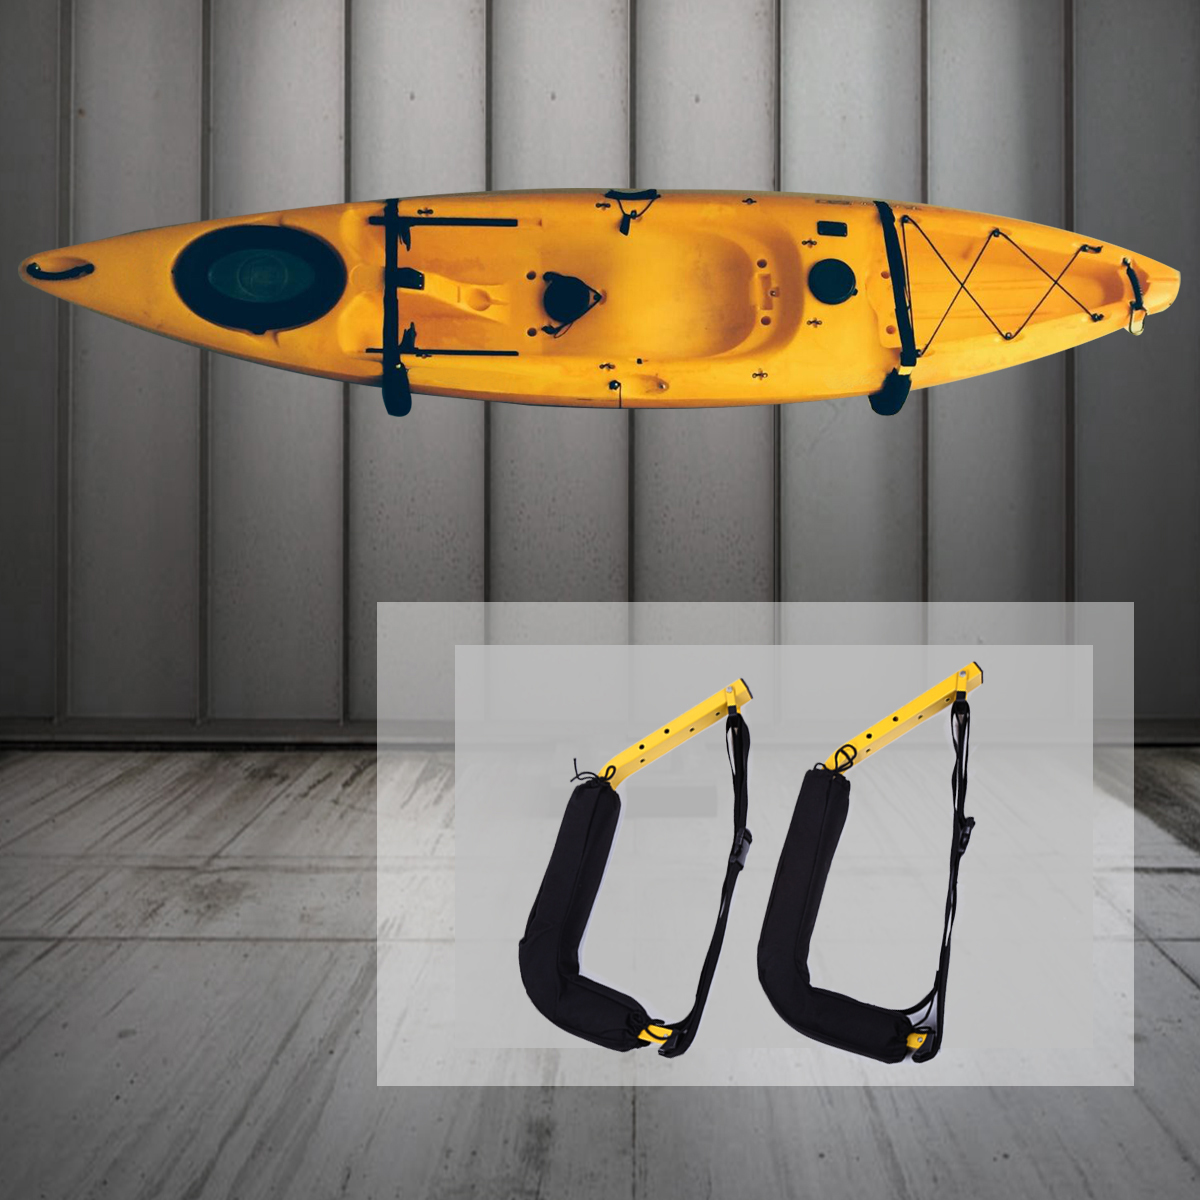 100 Lbs kayak Rack Outdoor Sports Canoe SUP Surfboard Wall Mount Storage Rack Wall Hanger with Safety Straps Boat Accessories